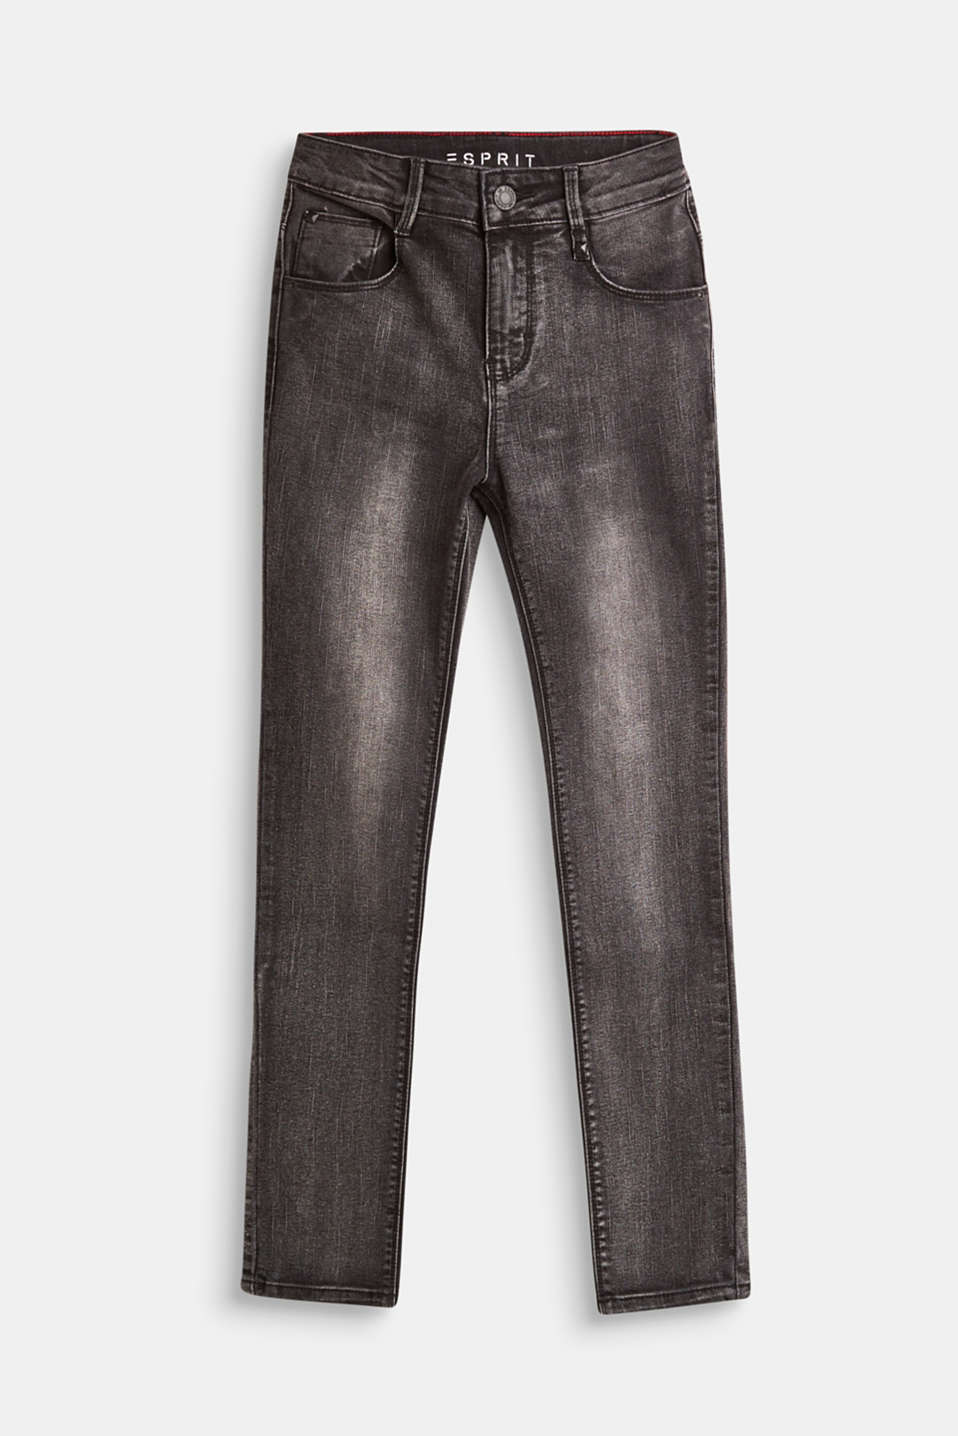 Esprit - Stretch jeans with a high, adjustable waistband